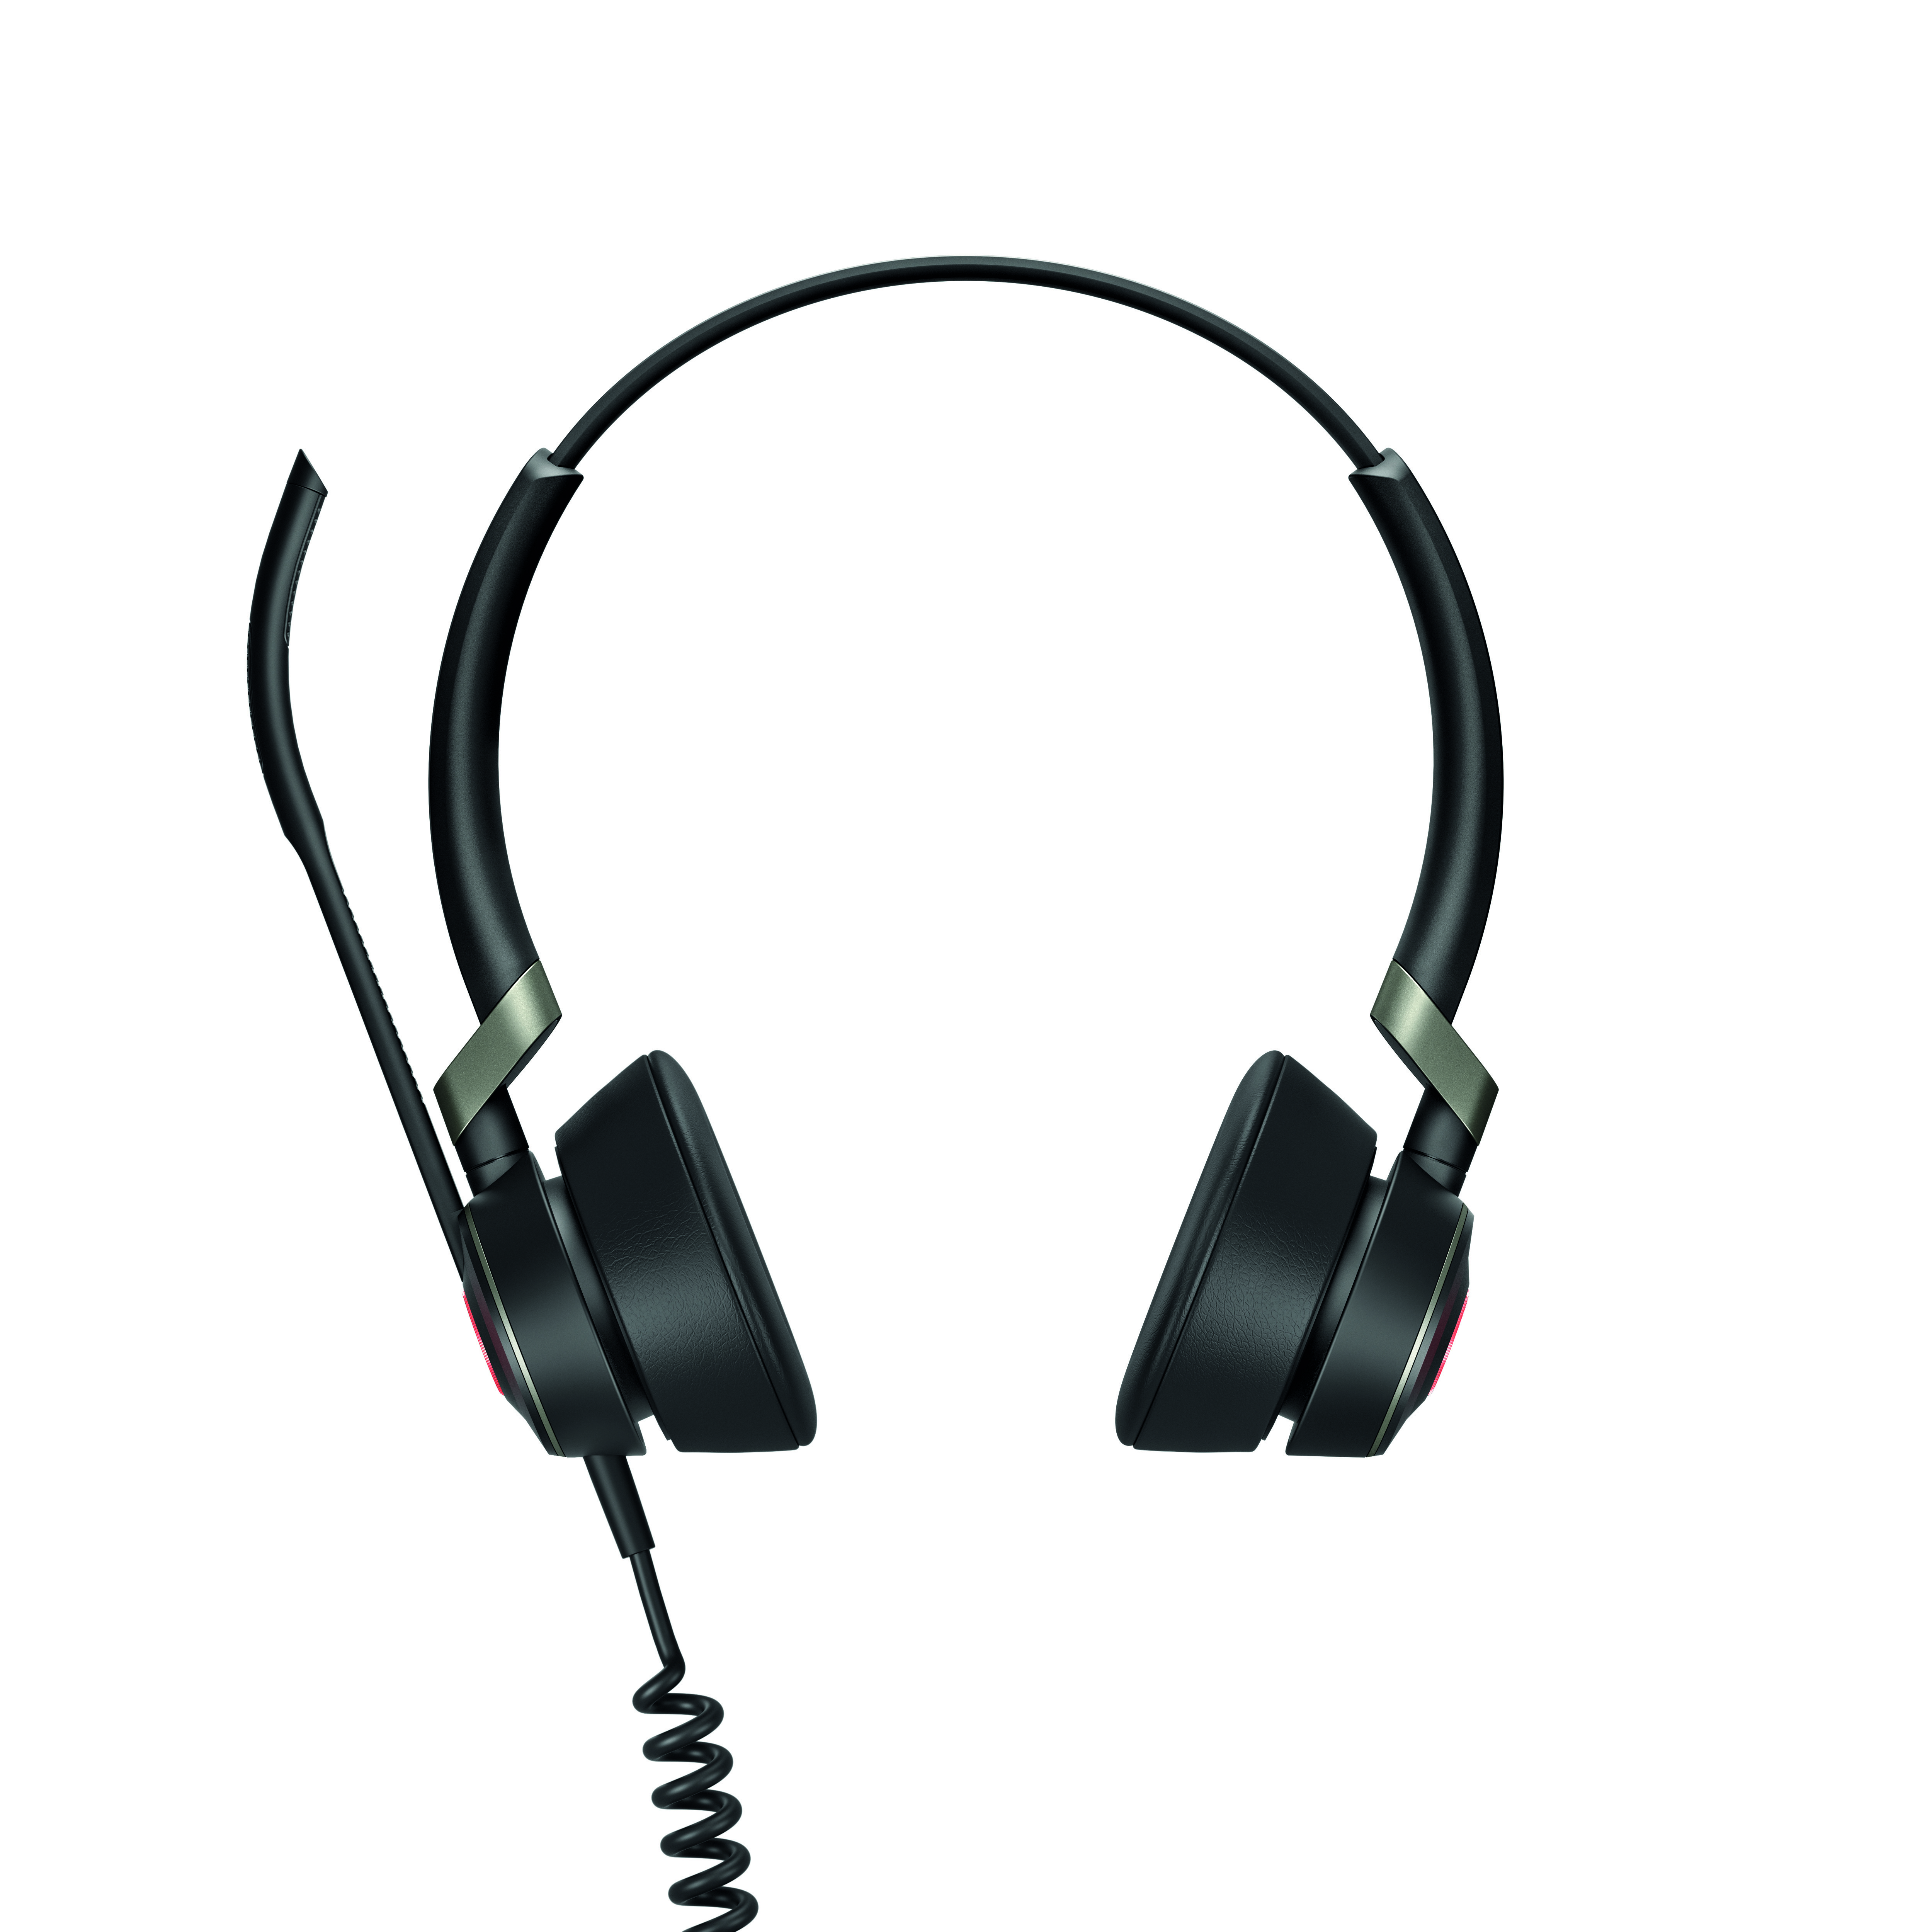 Jabra Engage 50 headset with busy light